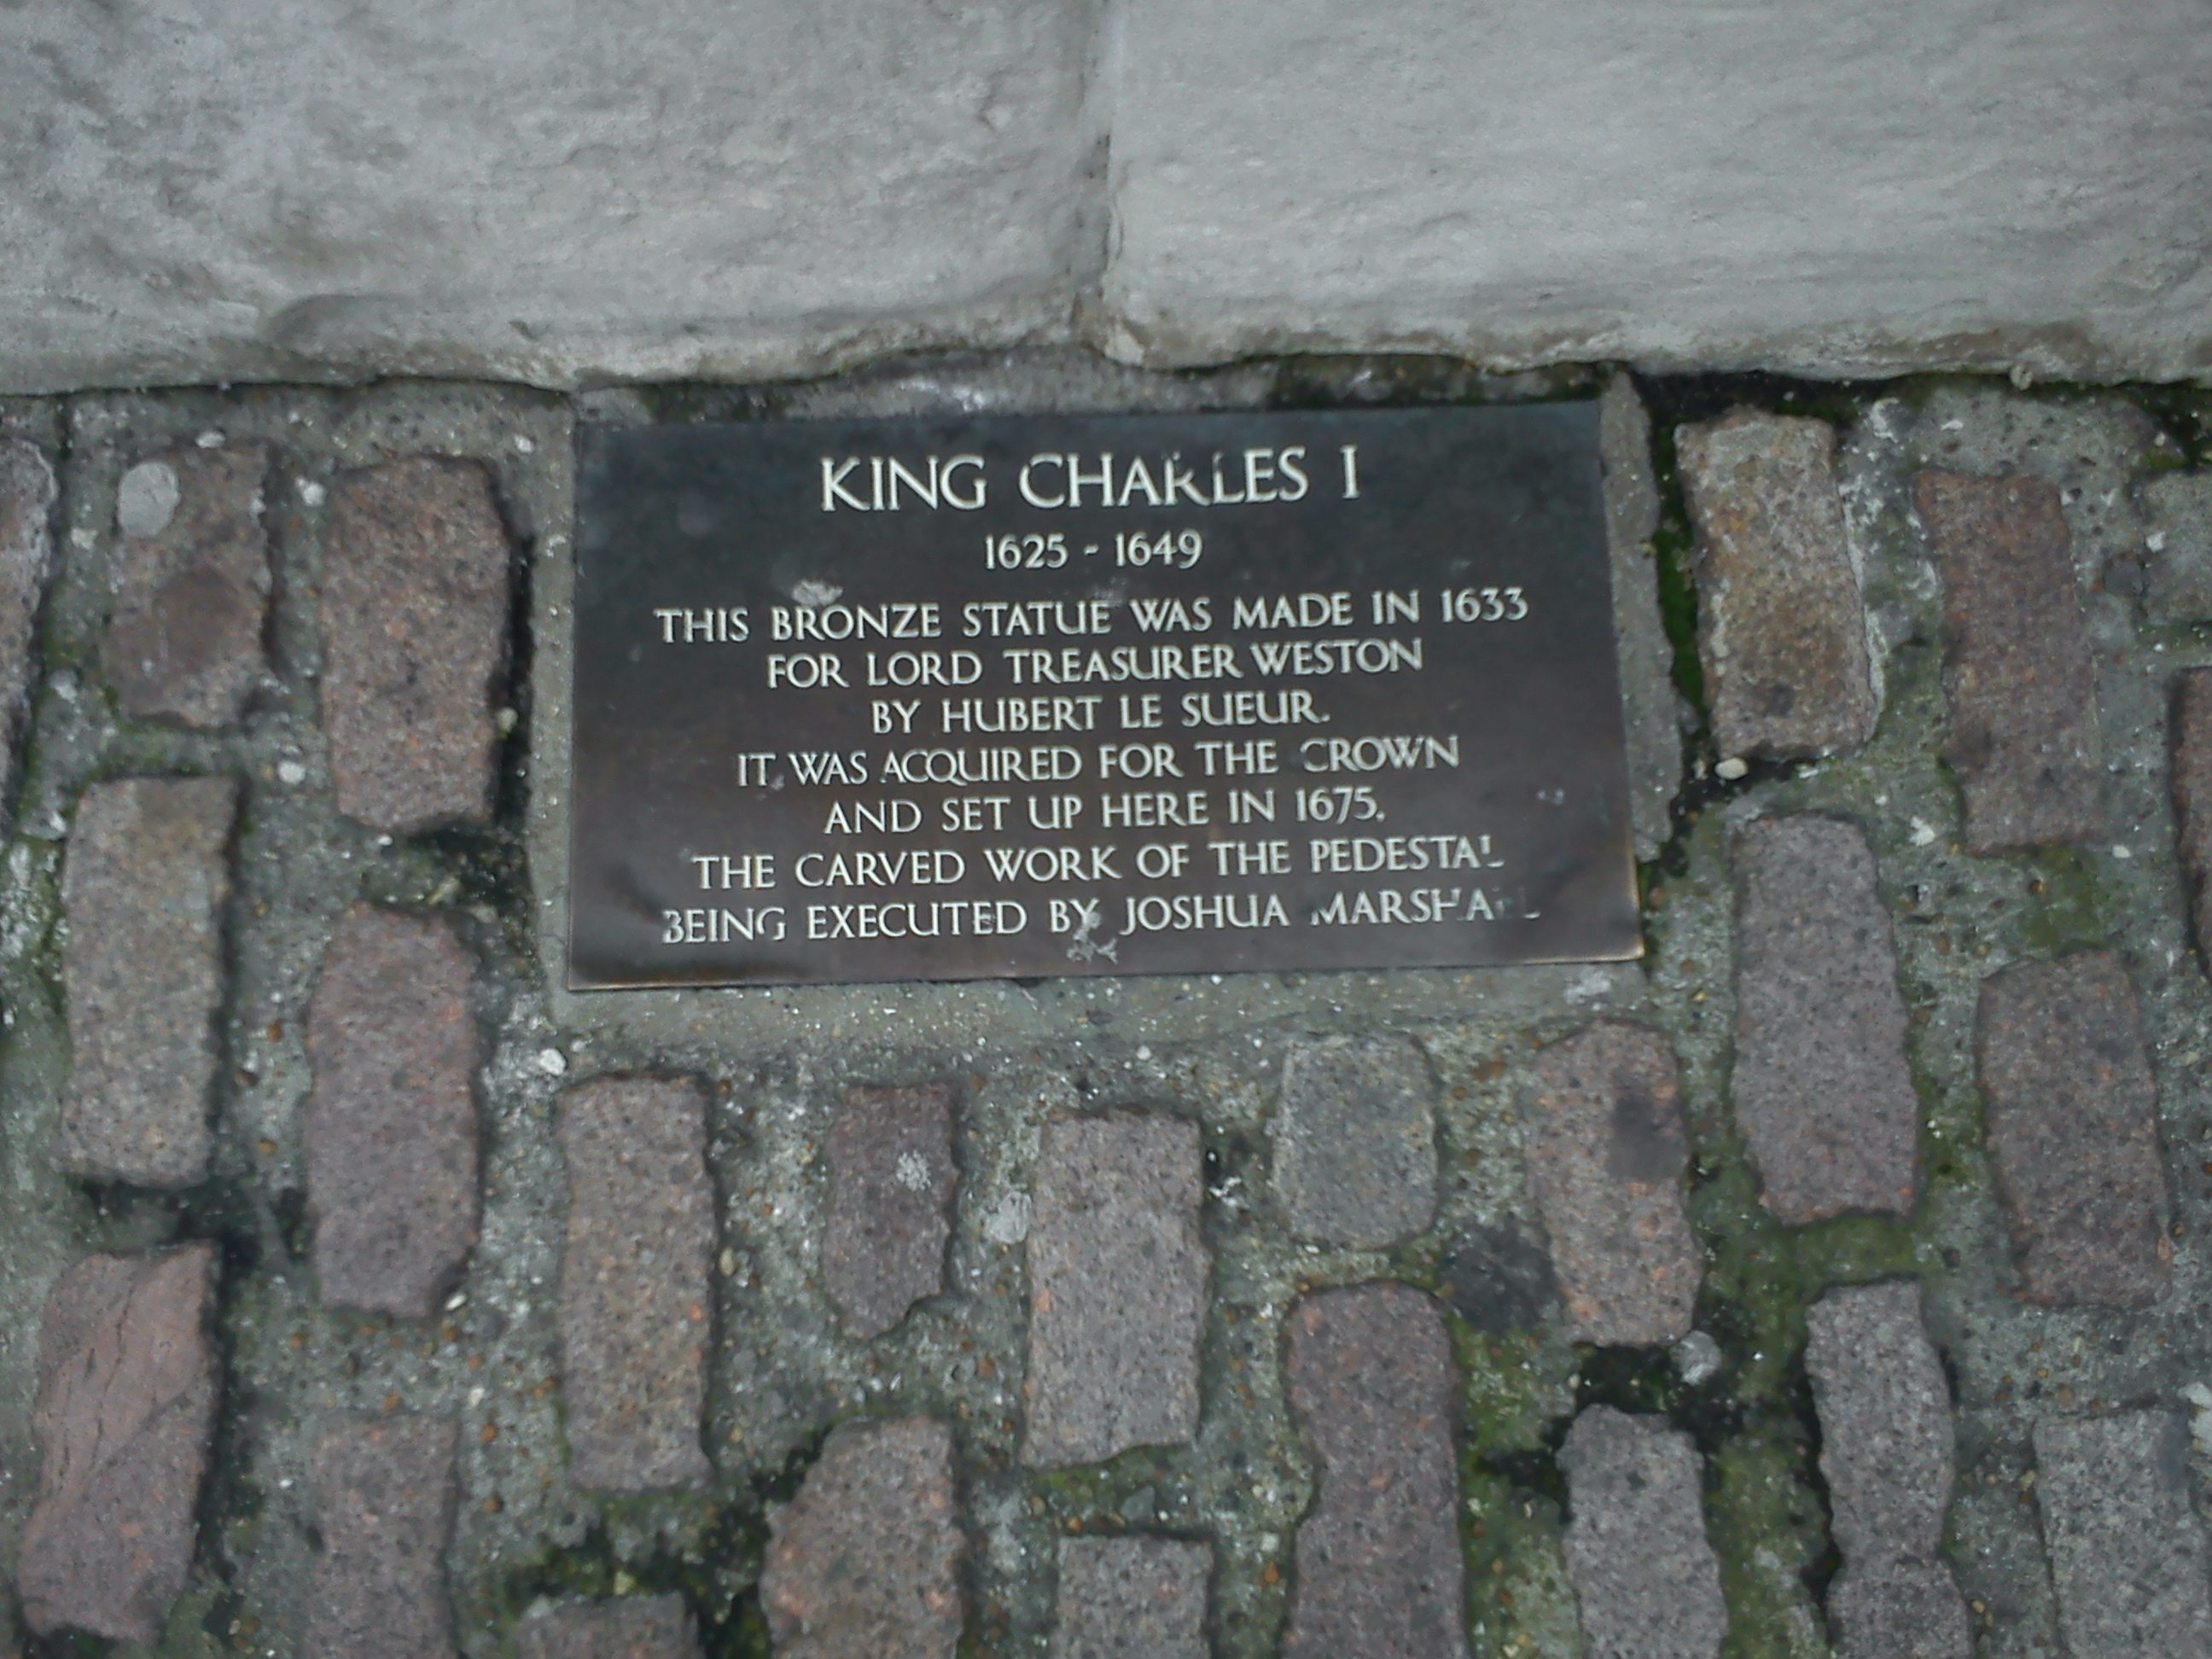 where was charles i executed